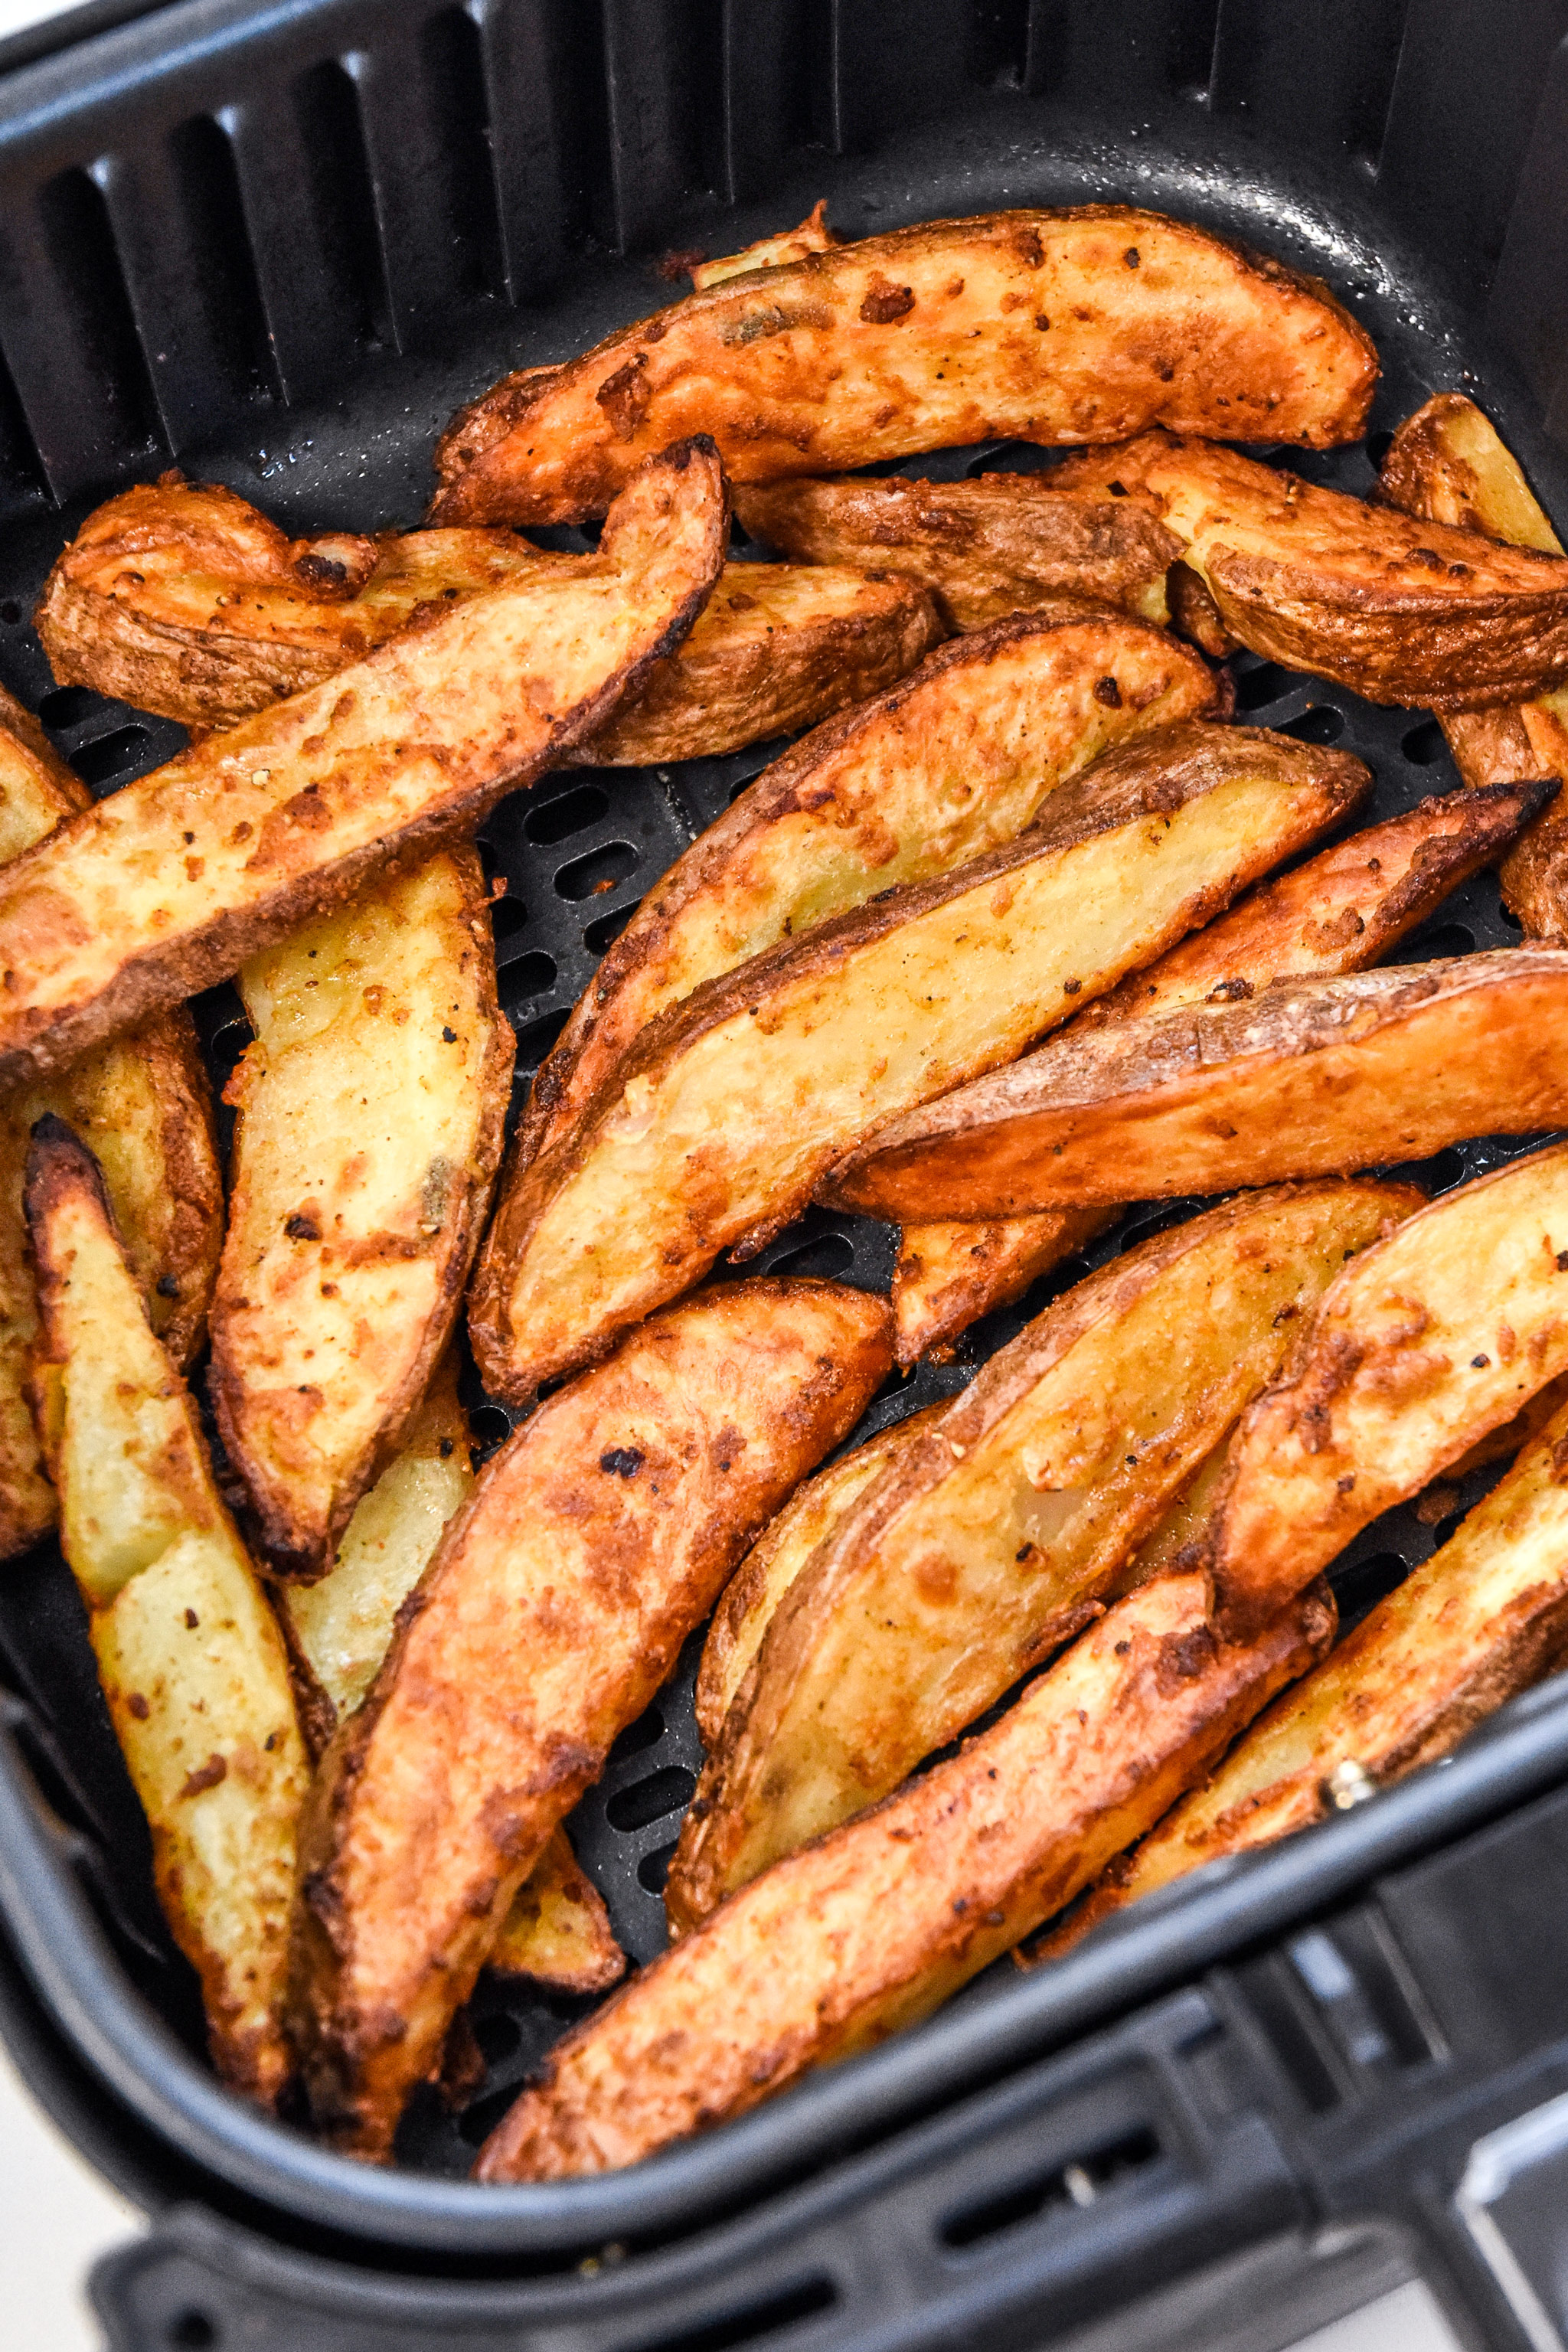 close up of cooked jojo potato wedges in an air fryer basket.